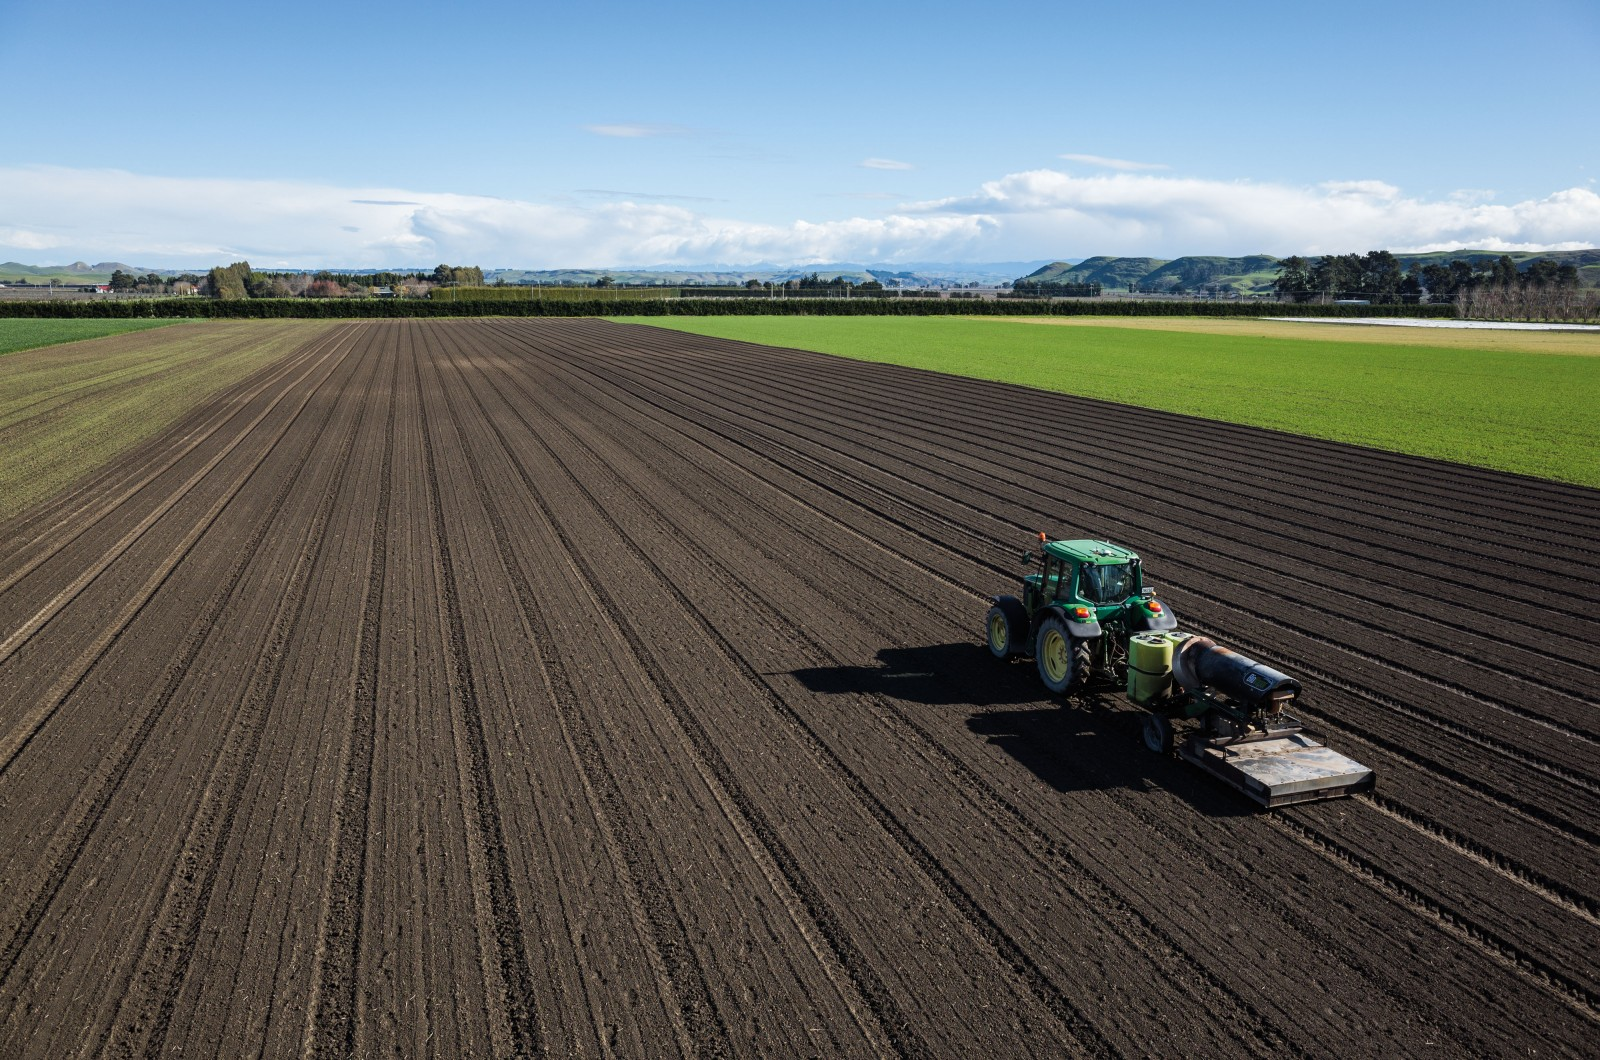 A tractor removes weeds prior to the emergence of an onion crop at True Earth Organic Farms in the Hawkes Bay, one of the largest producers of certified organic berry fruit and vegetables in New Zealand.